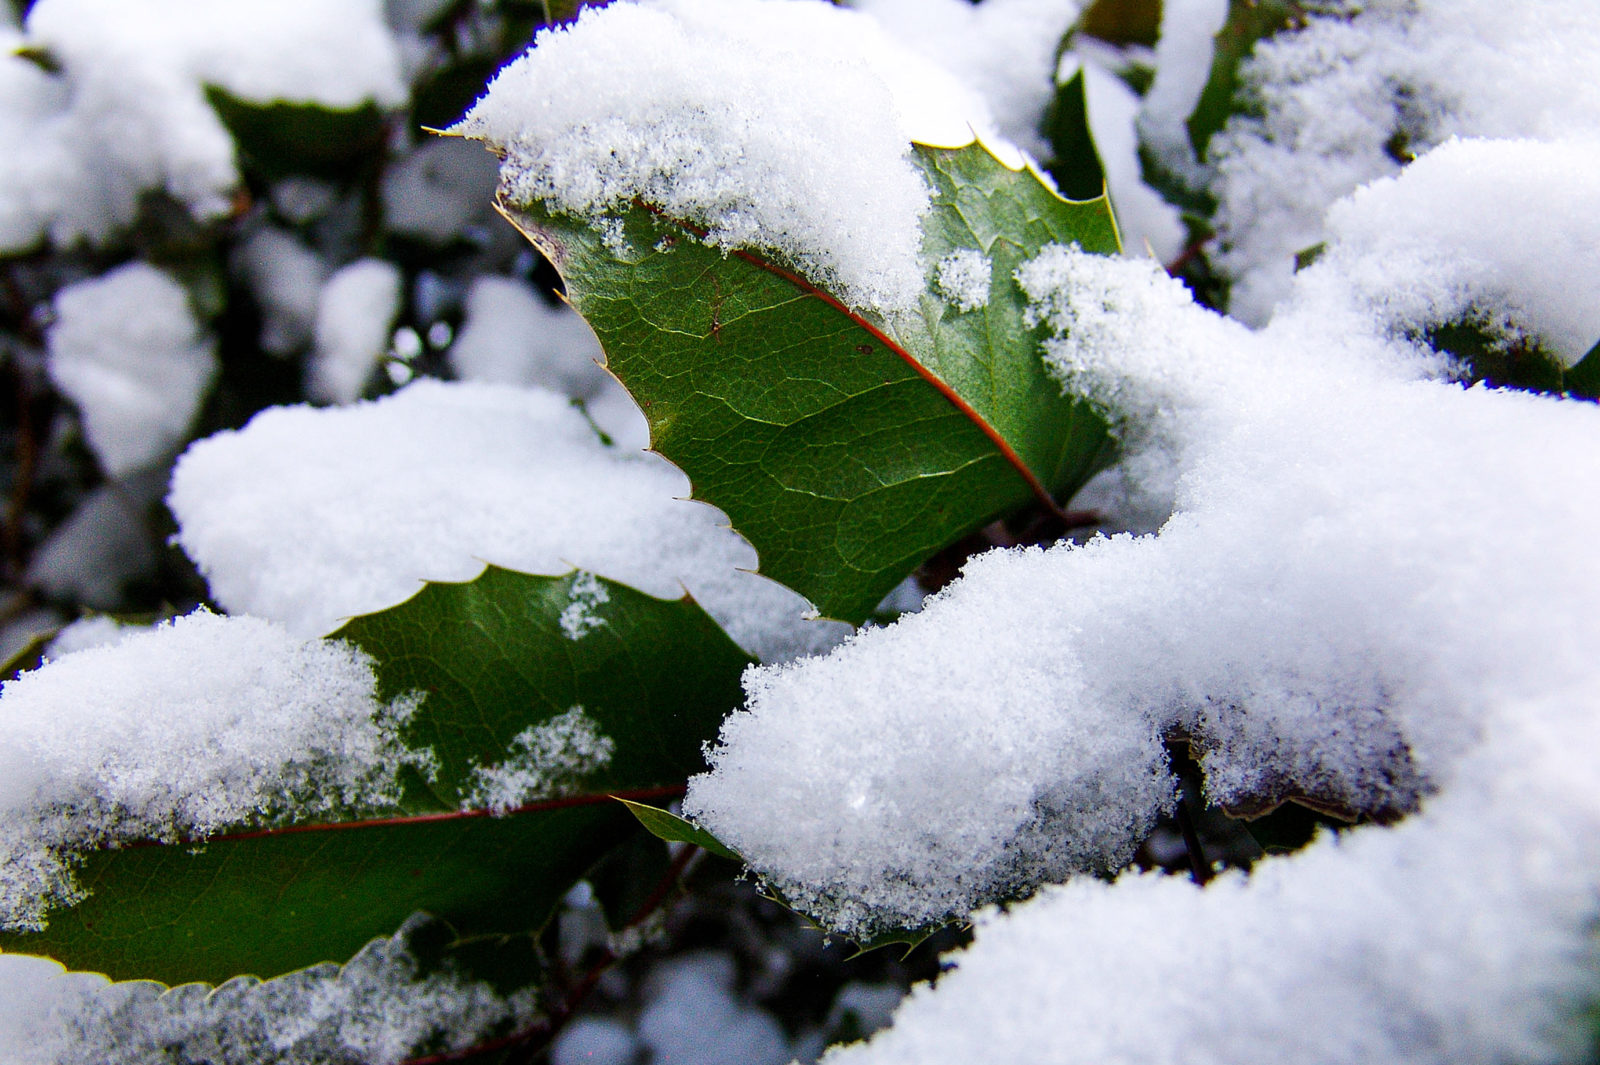 Snowfall on Some Holly Leaves